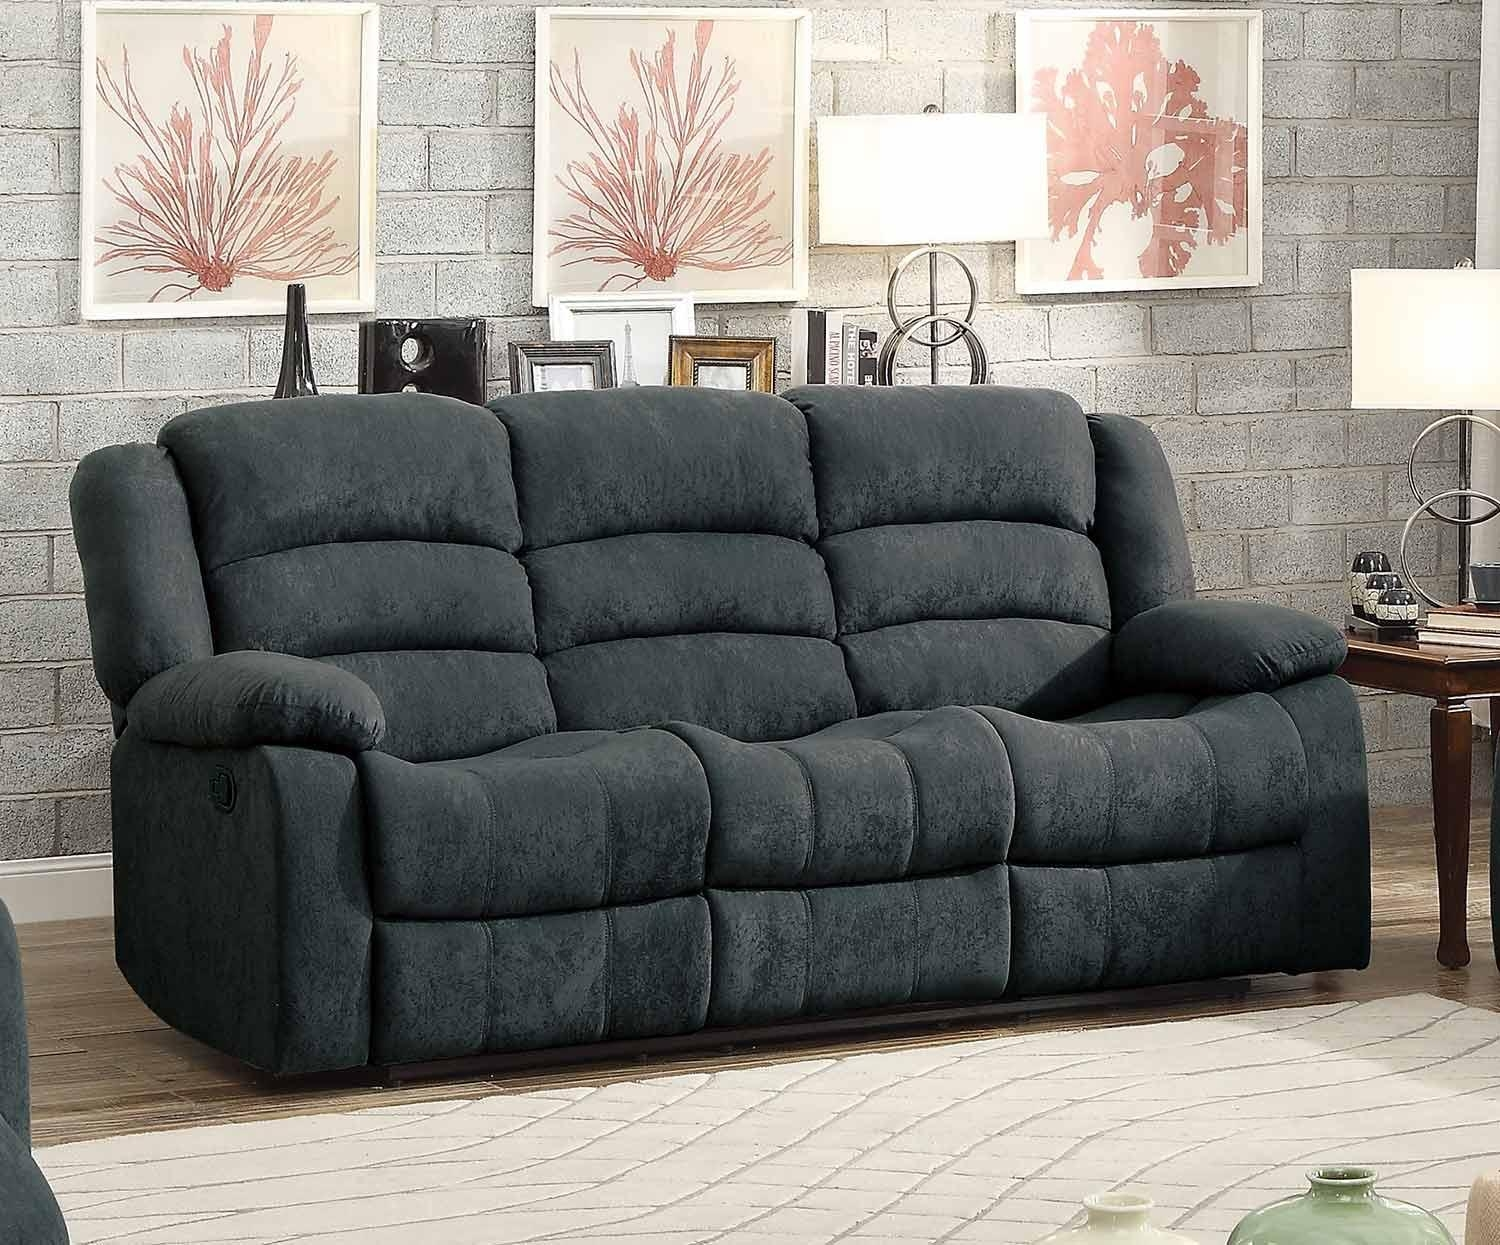 Rustic Leather Couch Set